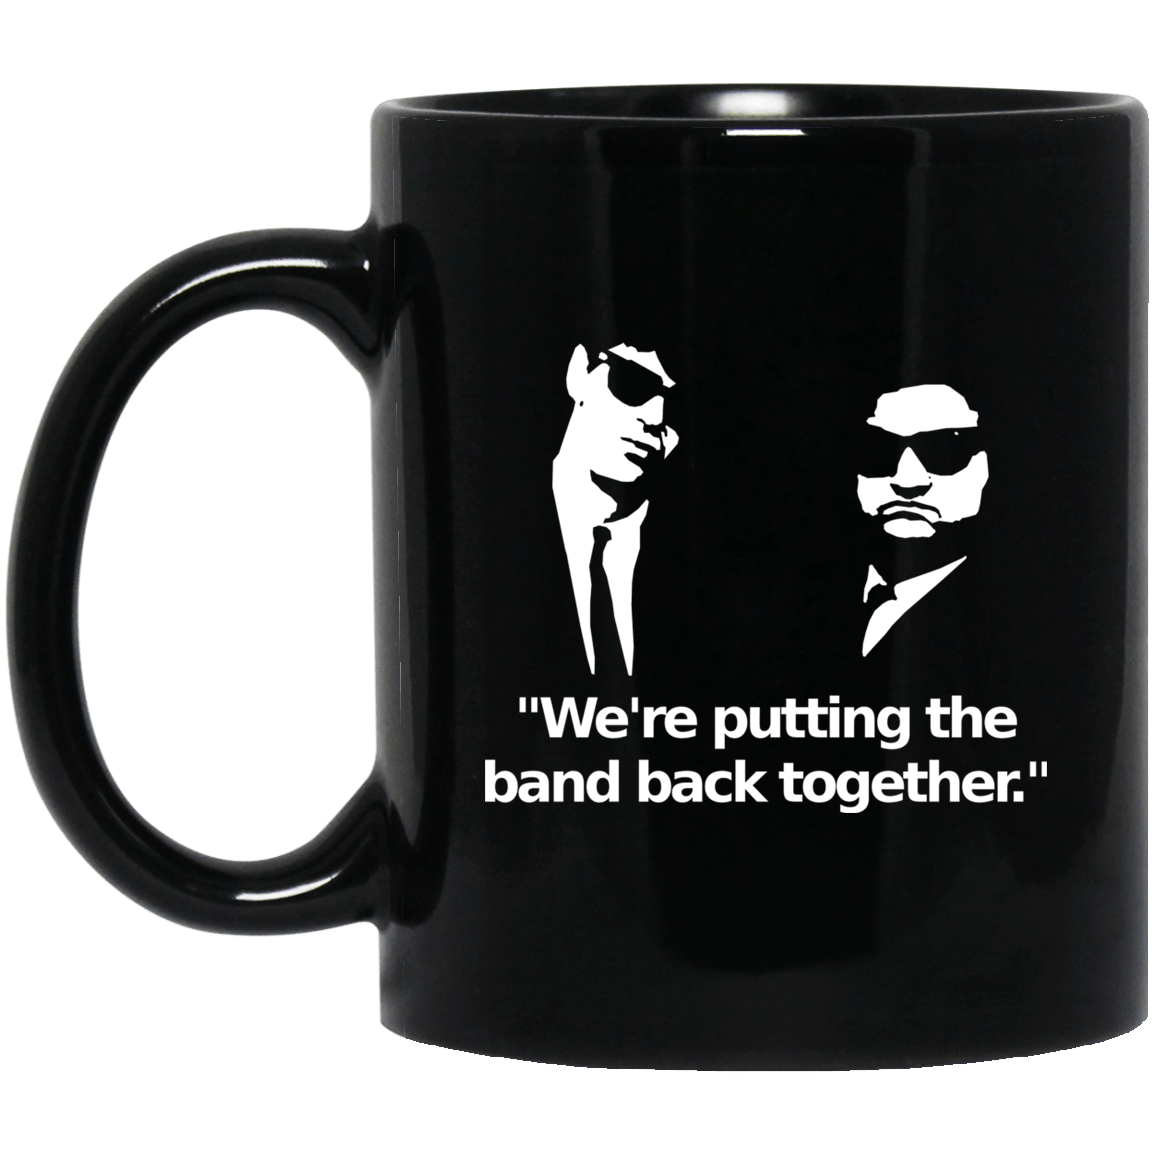 We're Putting The Band Back Together – Elwood Blues Mug 1065-10181-88282958-49307 - Tee Ript